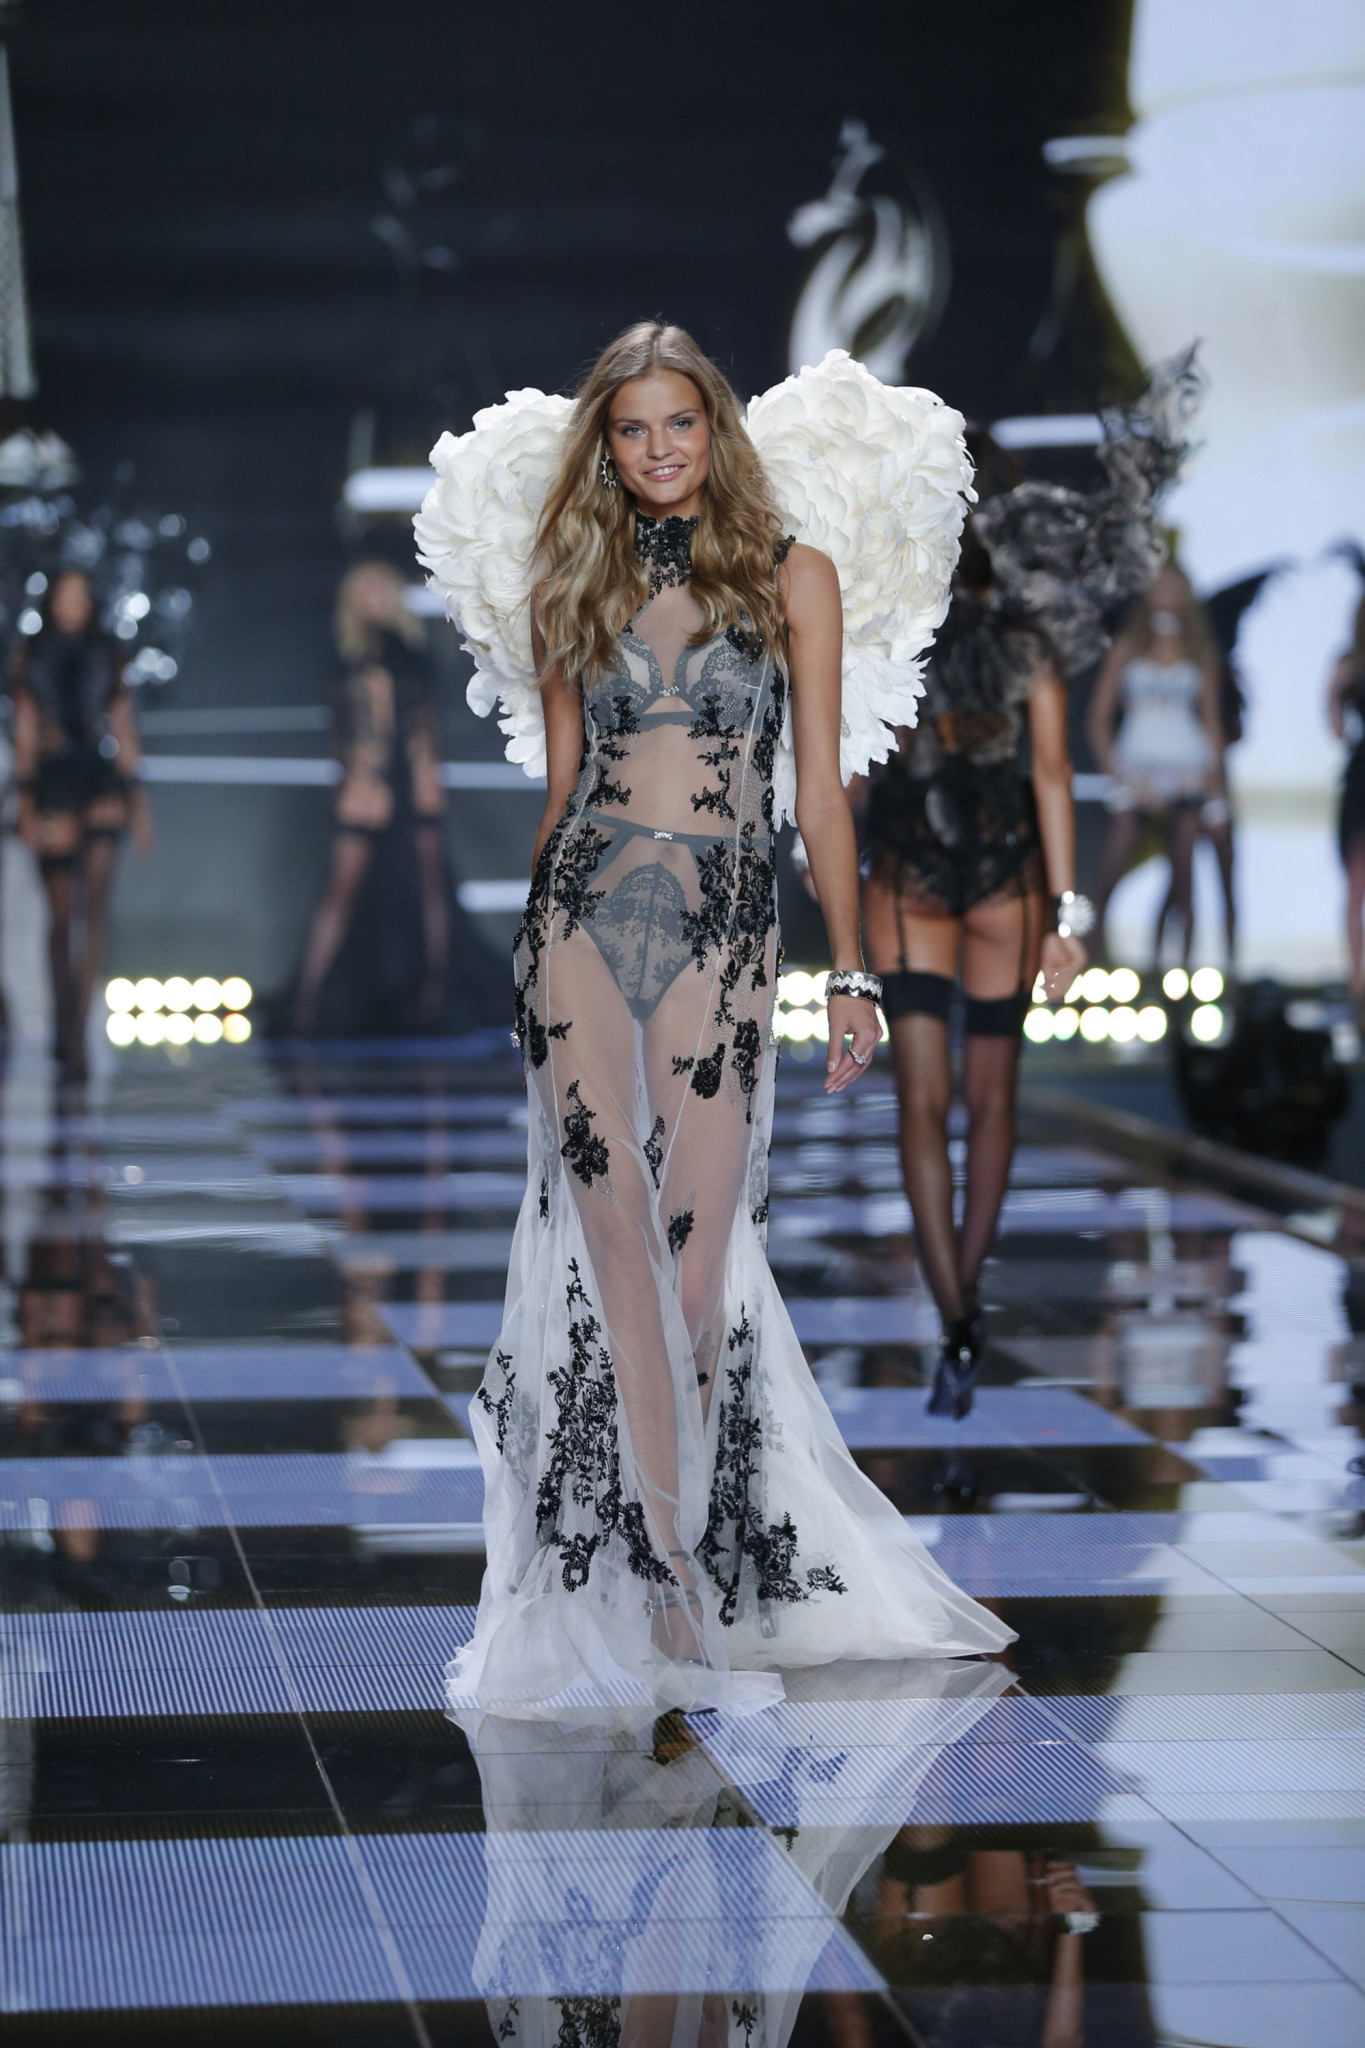 Kate Grigorieva walks the runway at the 2014 Victoria's Secret Fashion Show in London on December 2nd, 2014